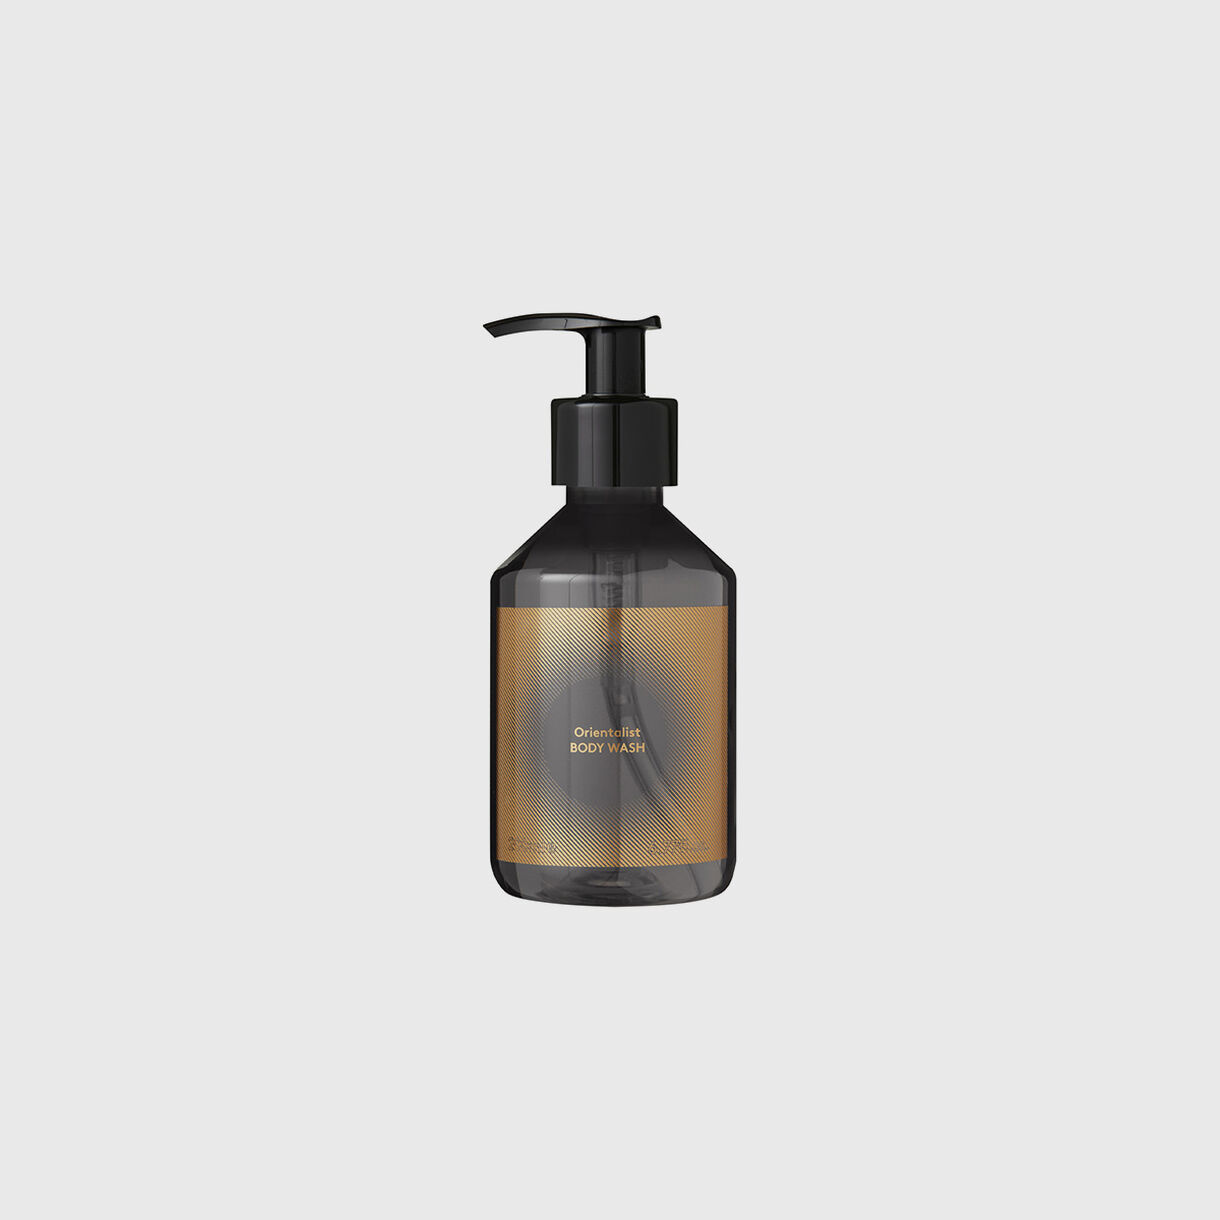 Eclectic Orientalist Body Wash, 200ml